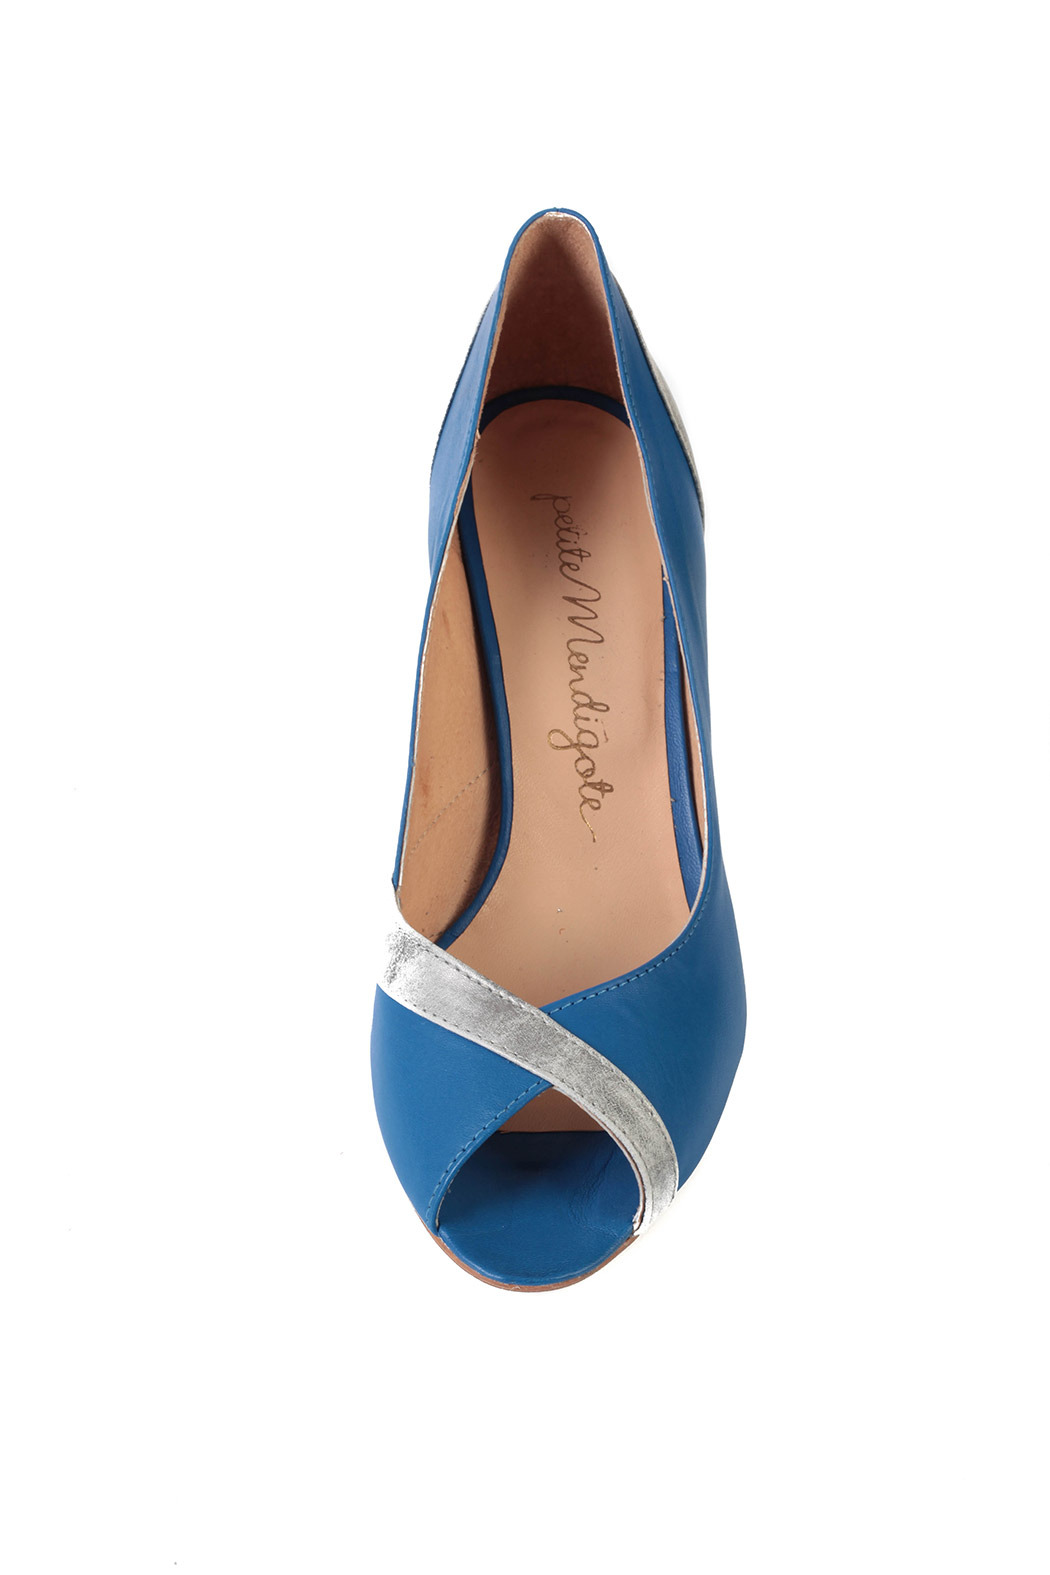 Petite Mendigote Blue and Silver Heels - Front Full Image